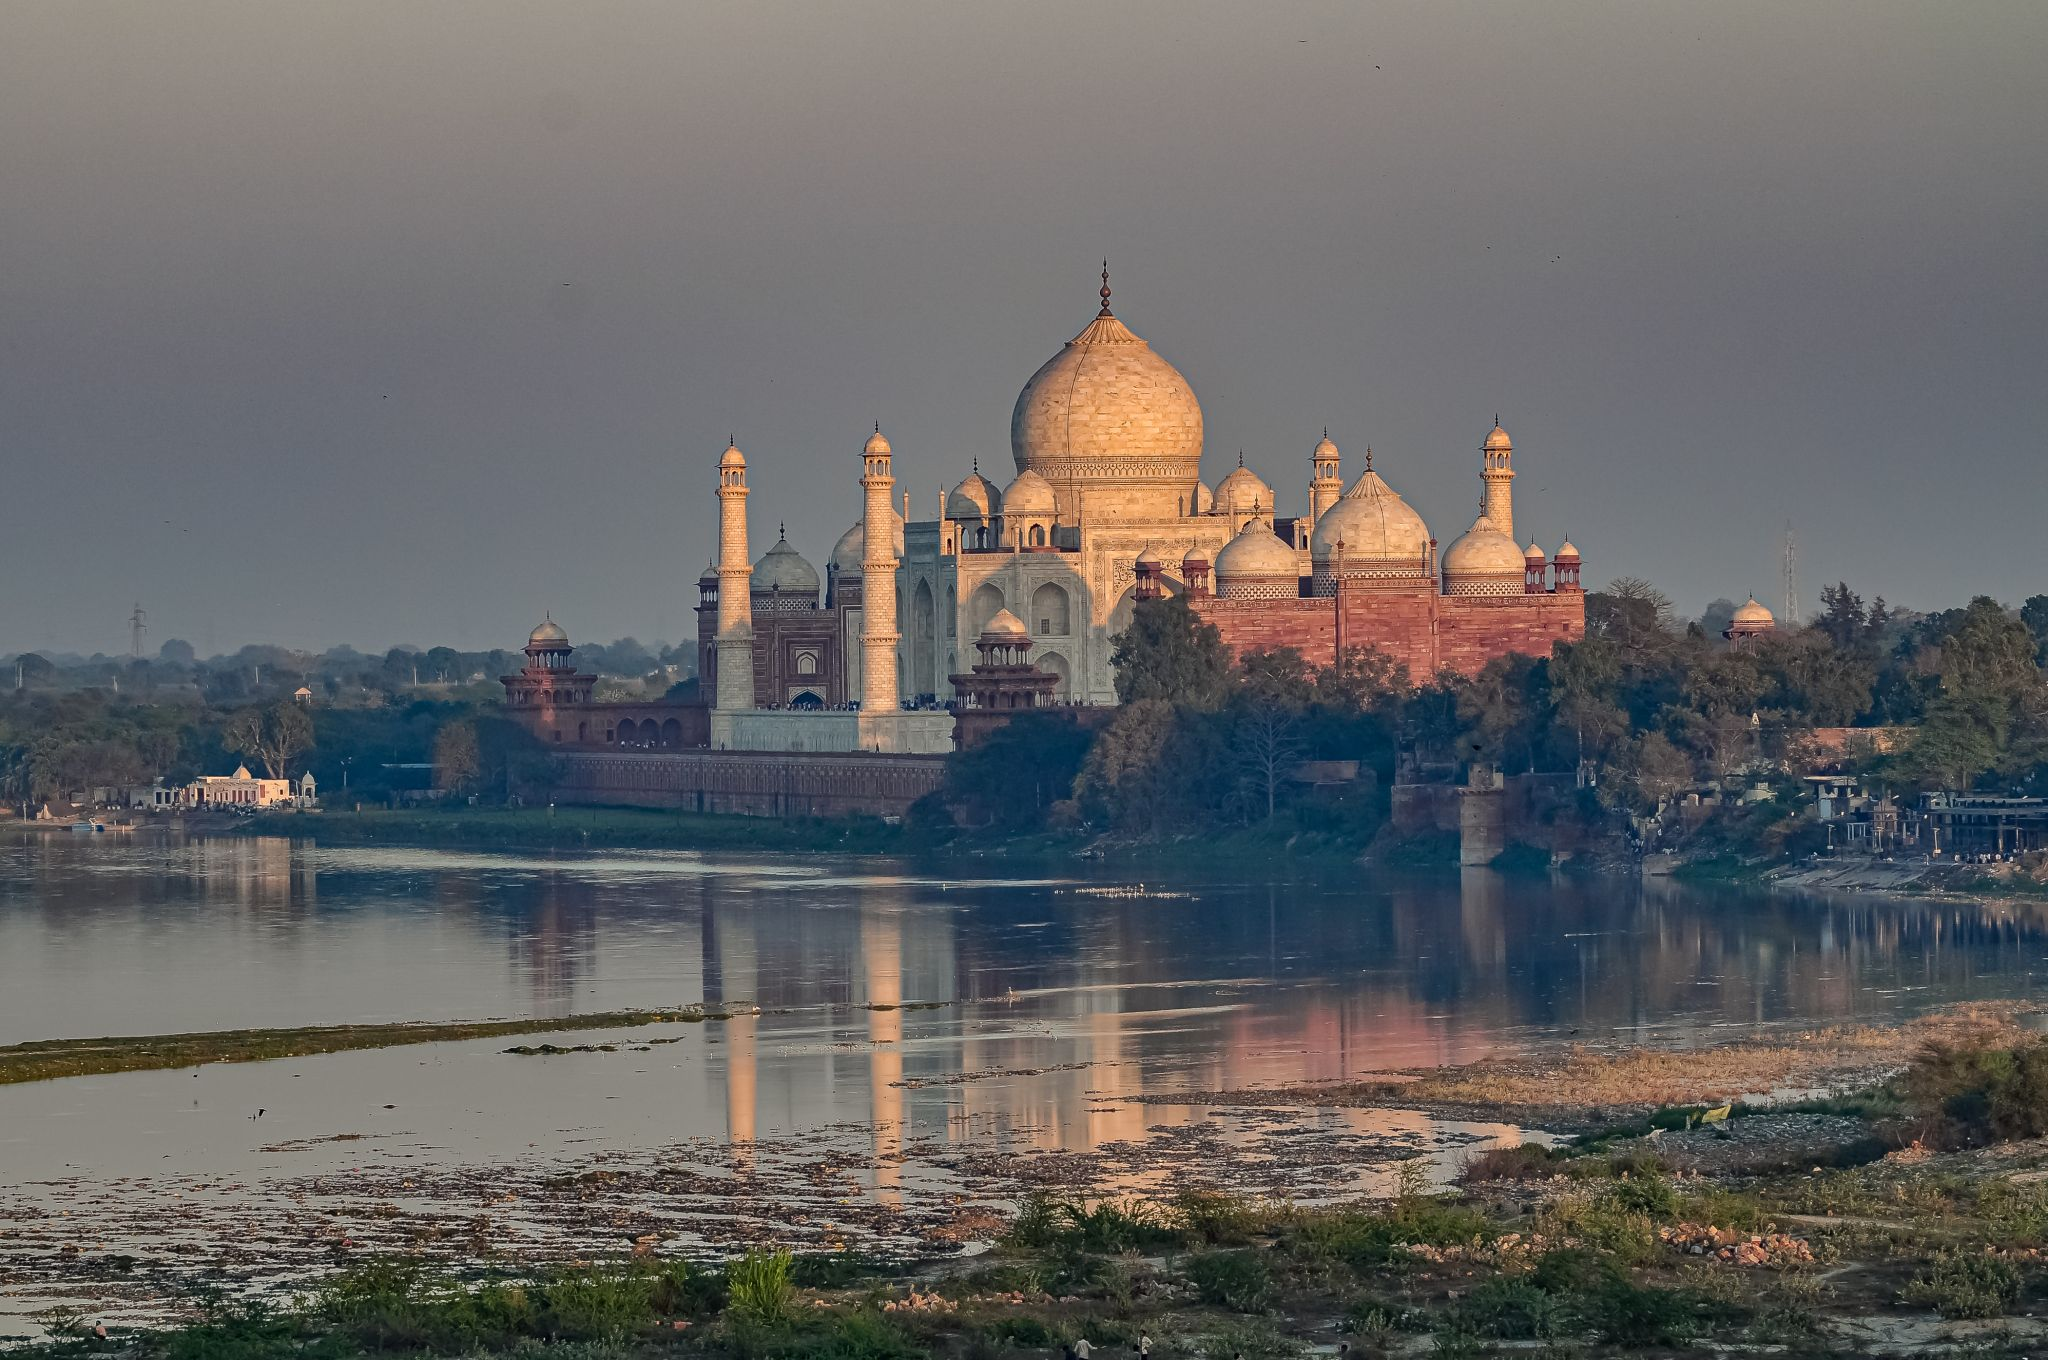 Taj Mahal from a different angle, India